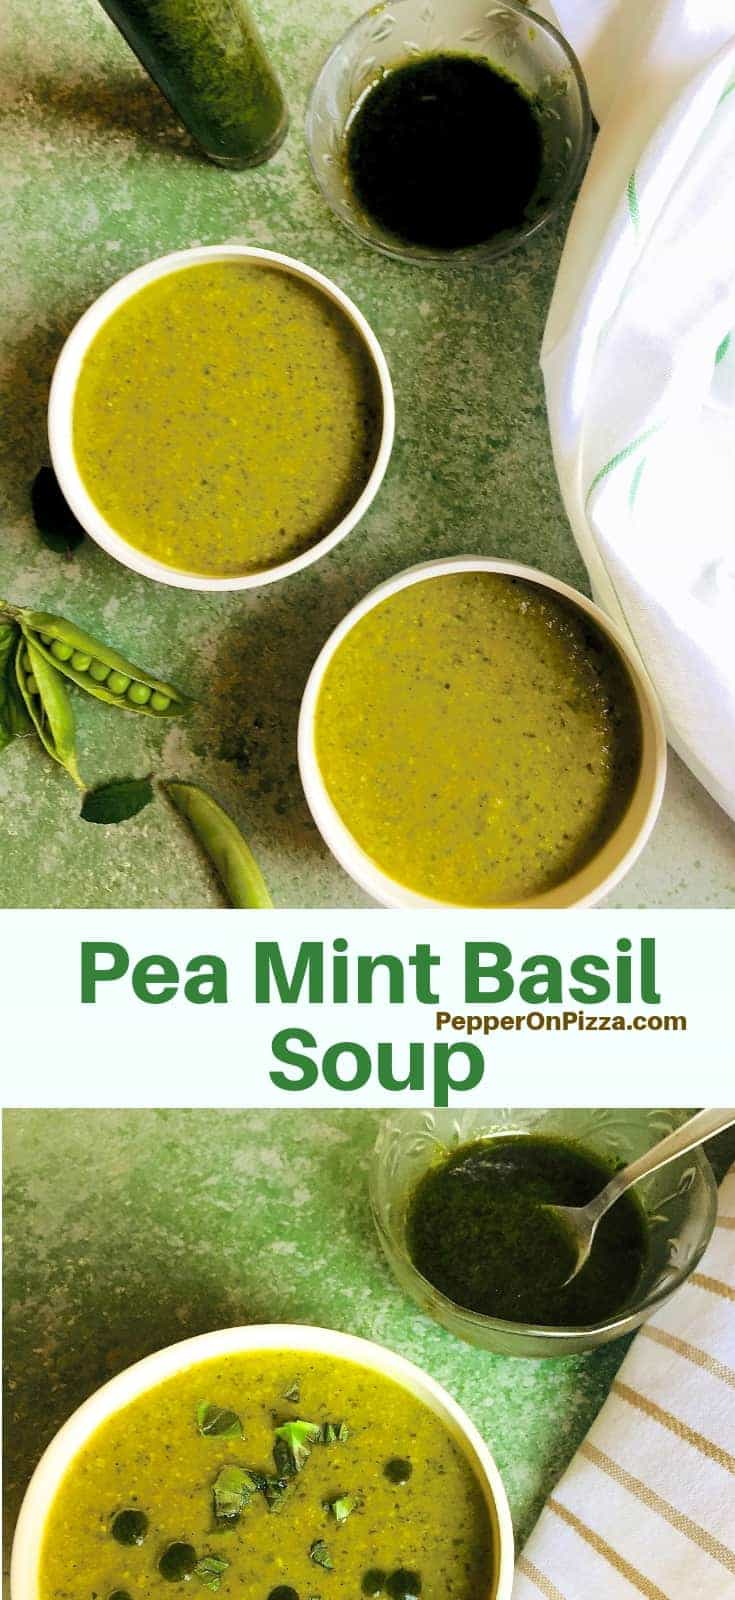 Two white bowls filled with a pea mint and basil soup, with split pea pods on one side and a white napkin on the other